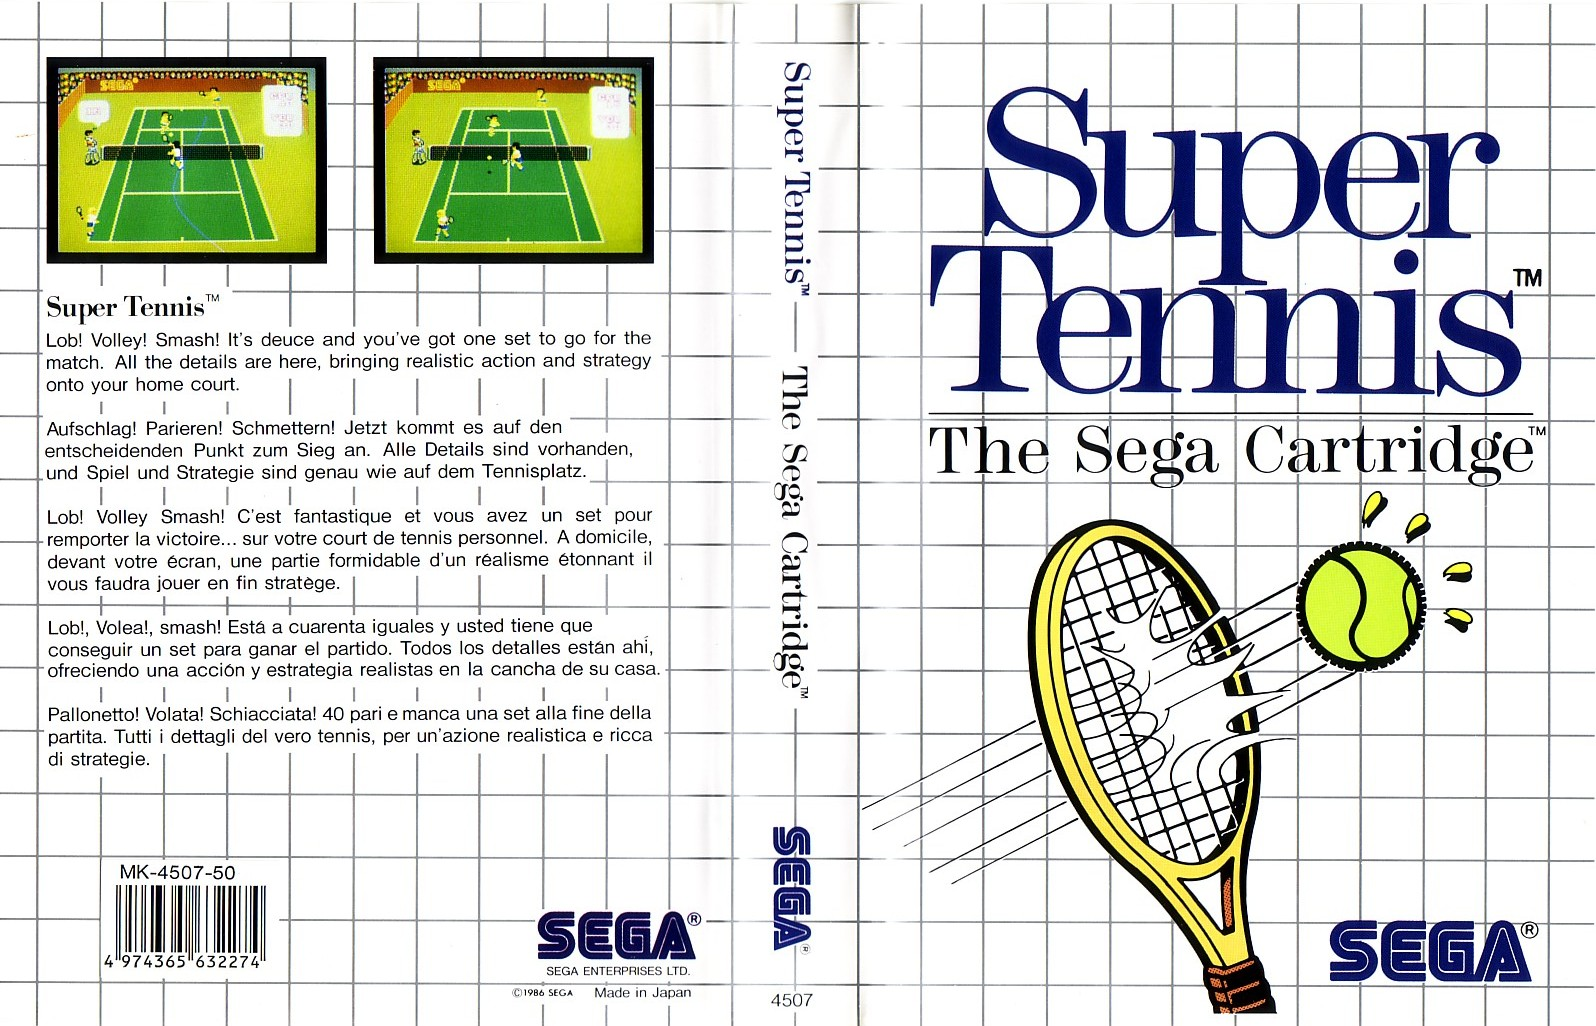 Sega Master System logo and accessory/game packaging - Fonts